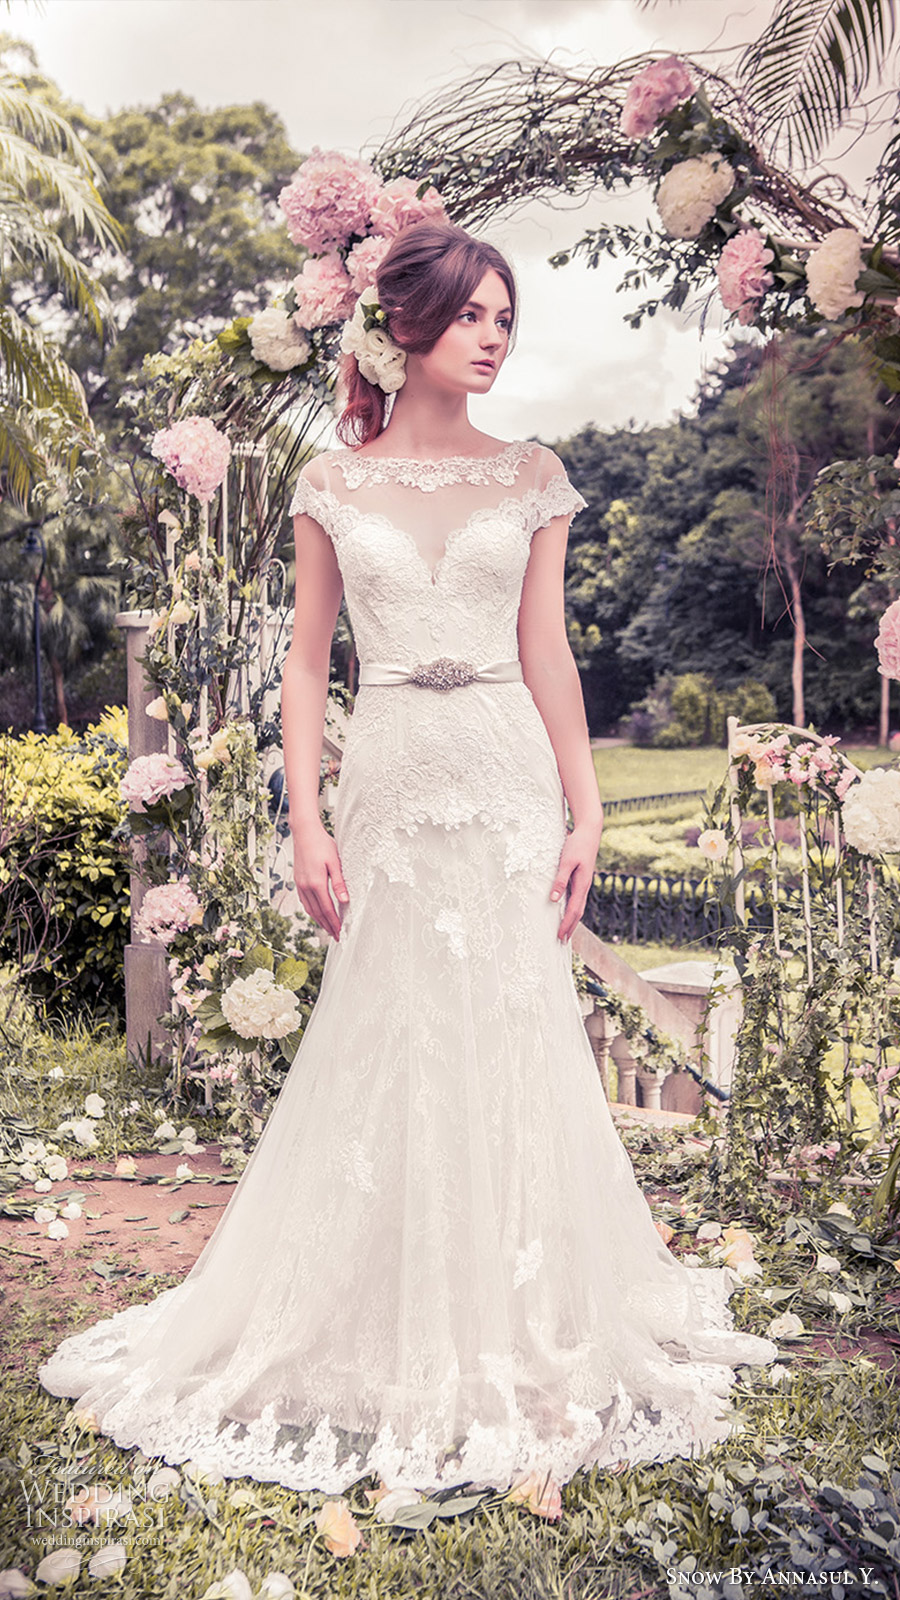 snow annasul y 2017 bridal (sa3265b) cap sleeves illusion bateau neck sweetheart trumpet lace wedding dress mv